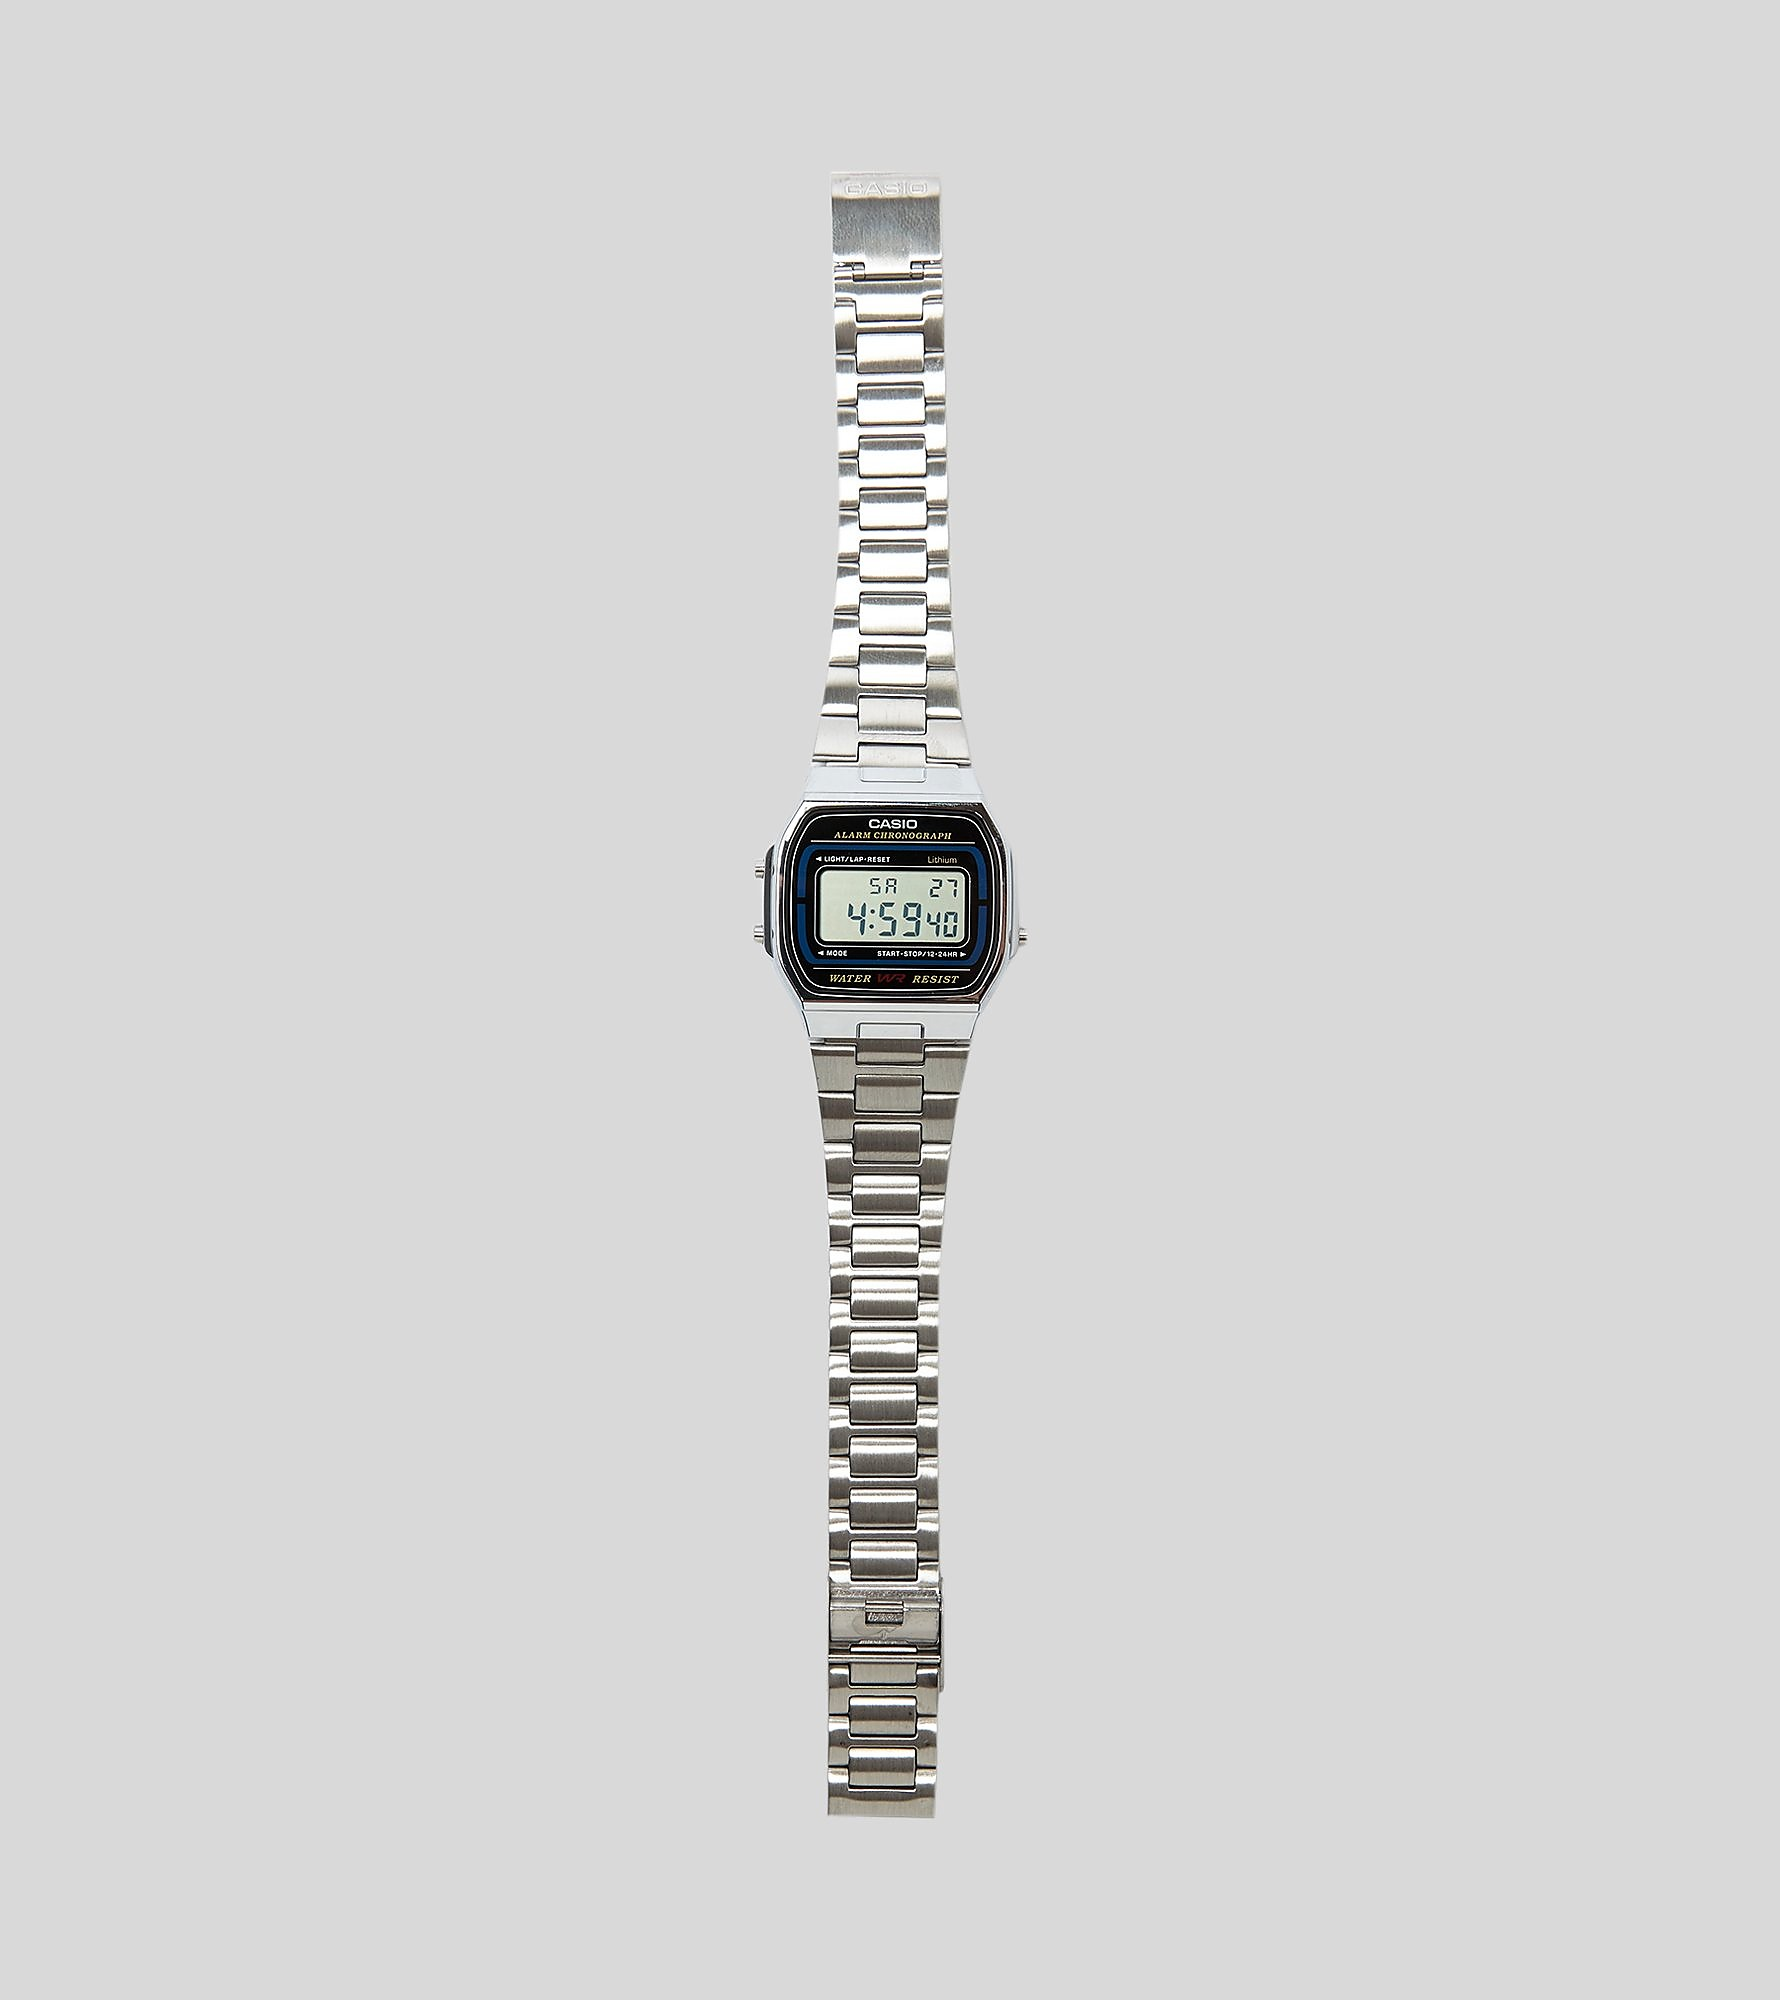 Casio A164 Classic Watch